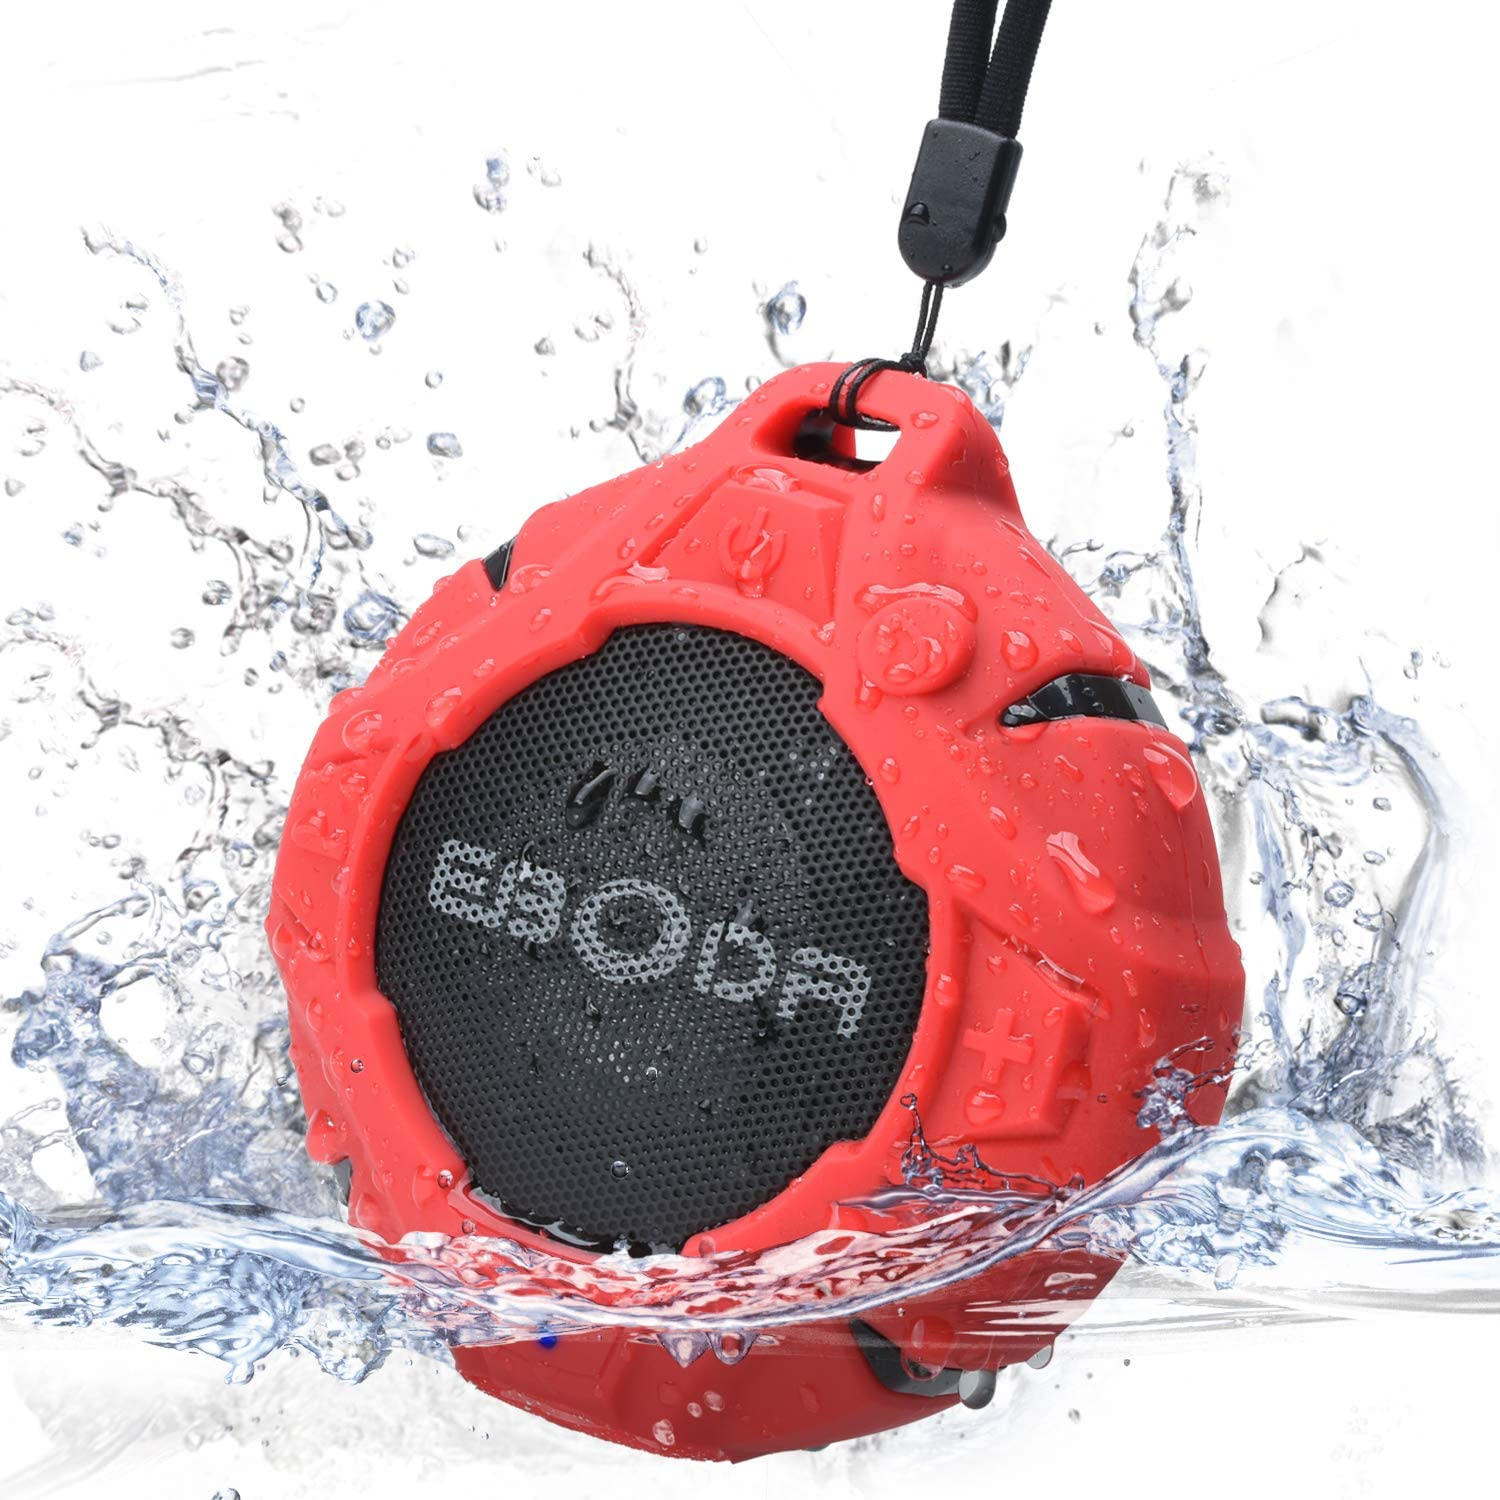 EBODA Shower Speaker, Waterproof Portable Bluetooth Speakers with Crisp Sound, IP67 Water Resistance Outdoor Wireless Speaker with Enhanced Bass, Built-in Microphone for Shower, Beach, Hiking- Red